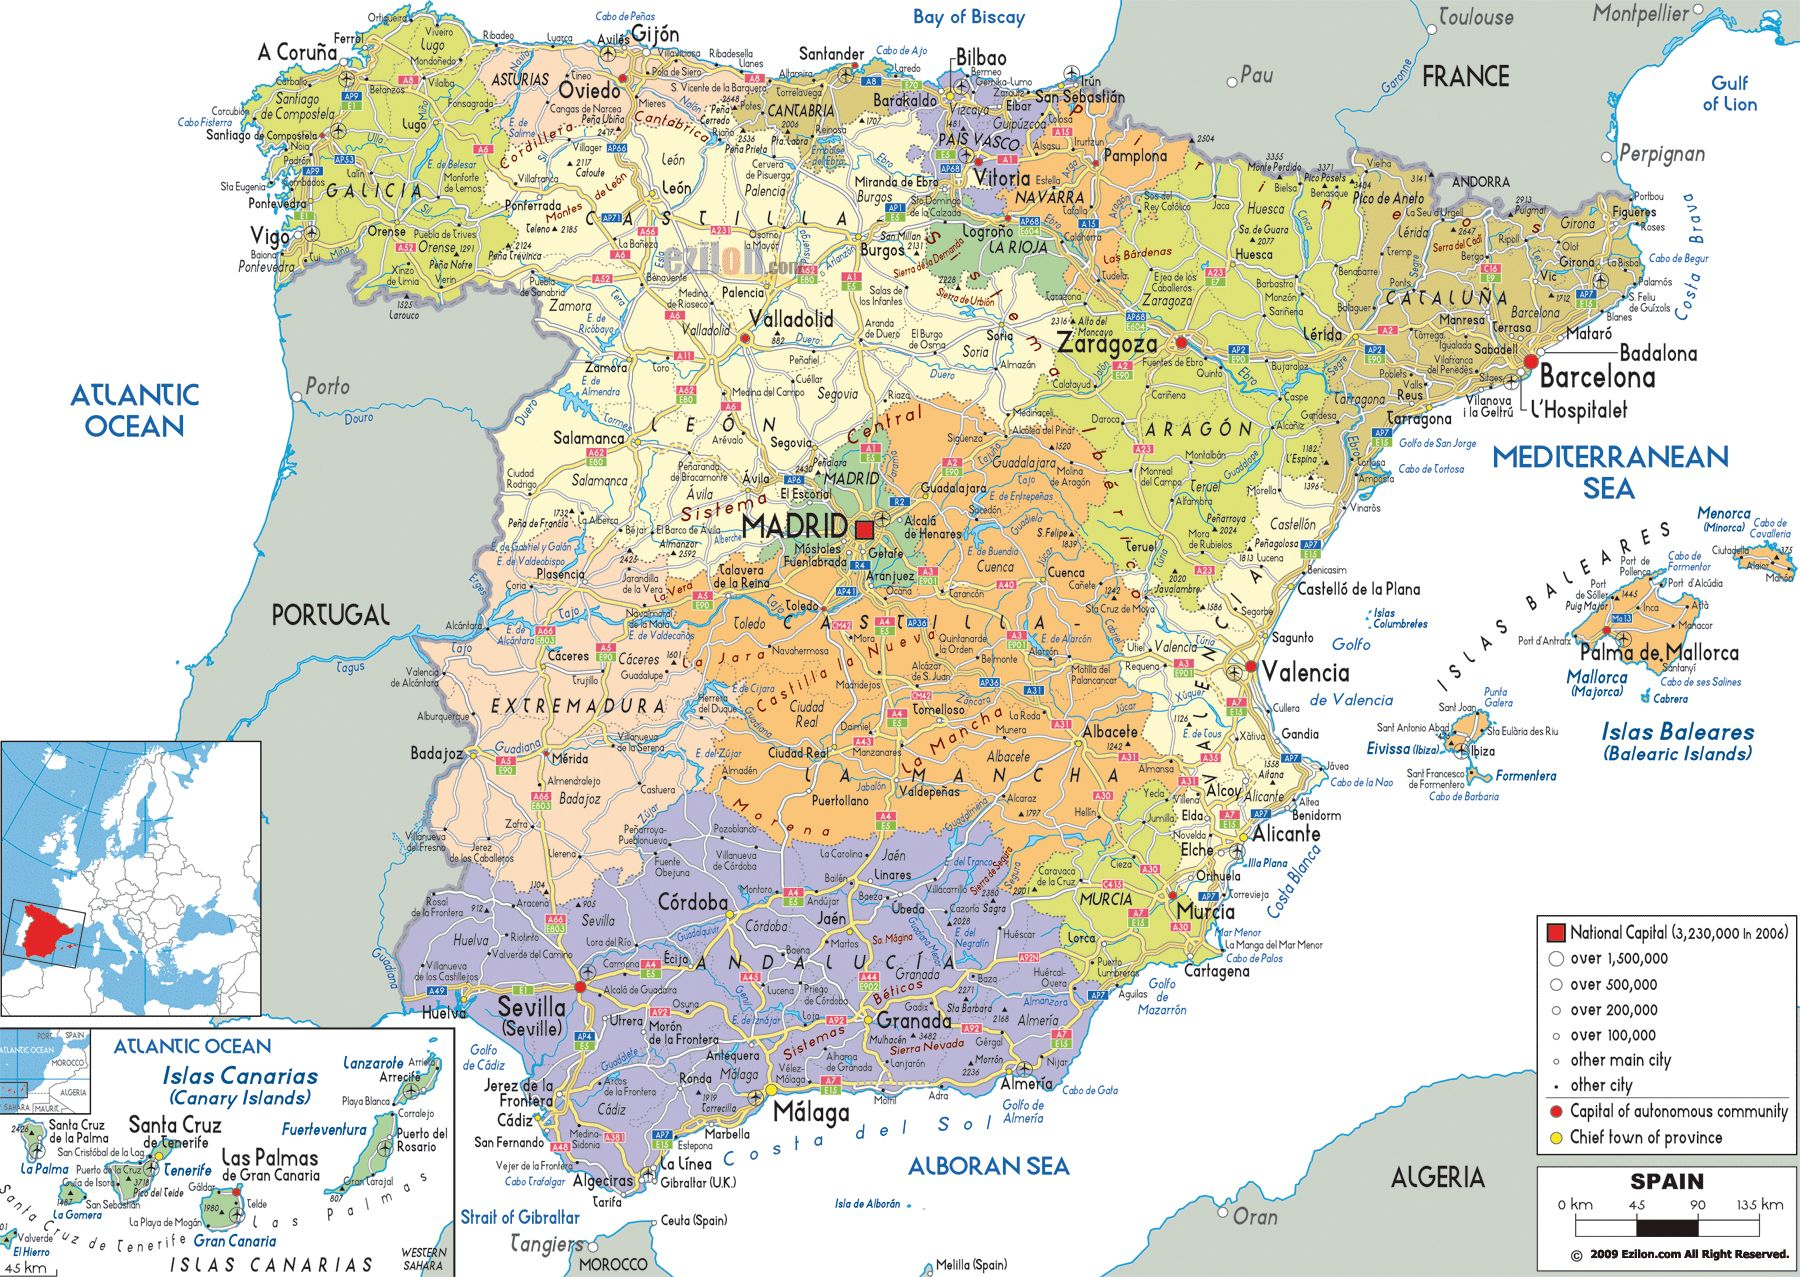 Map Of Spain Showing Airports.Large Detailed Political And Administrative Map Of Spain With All